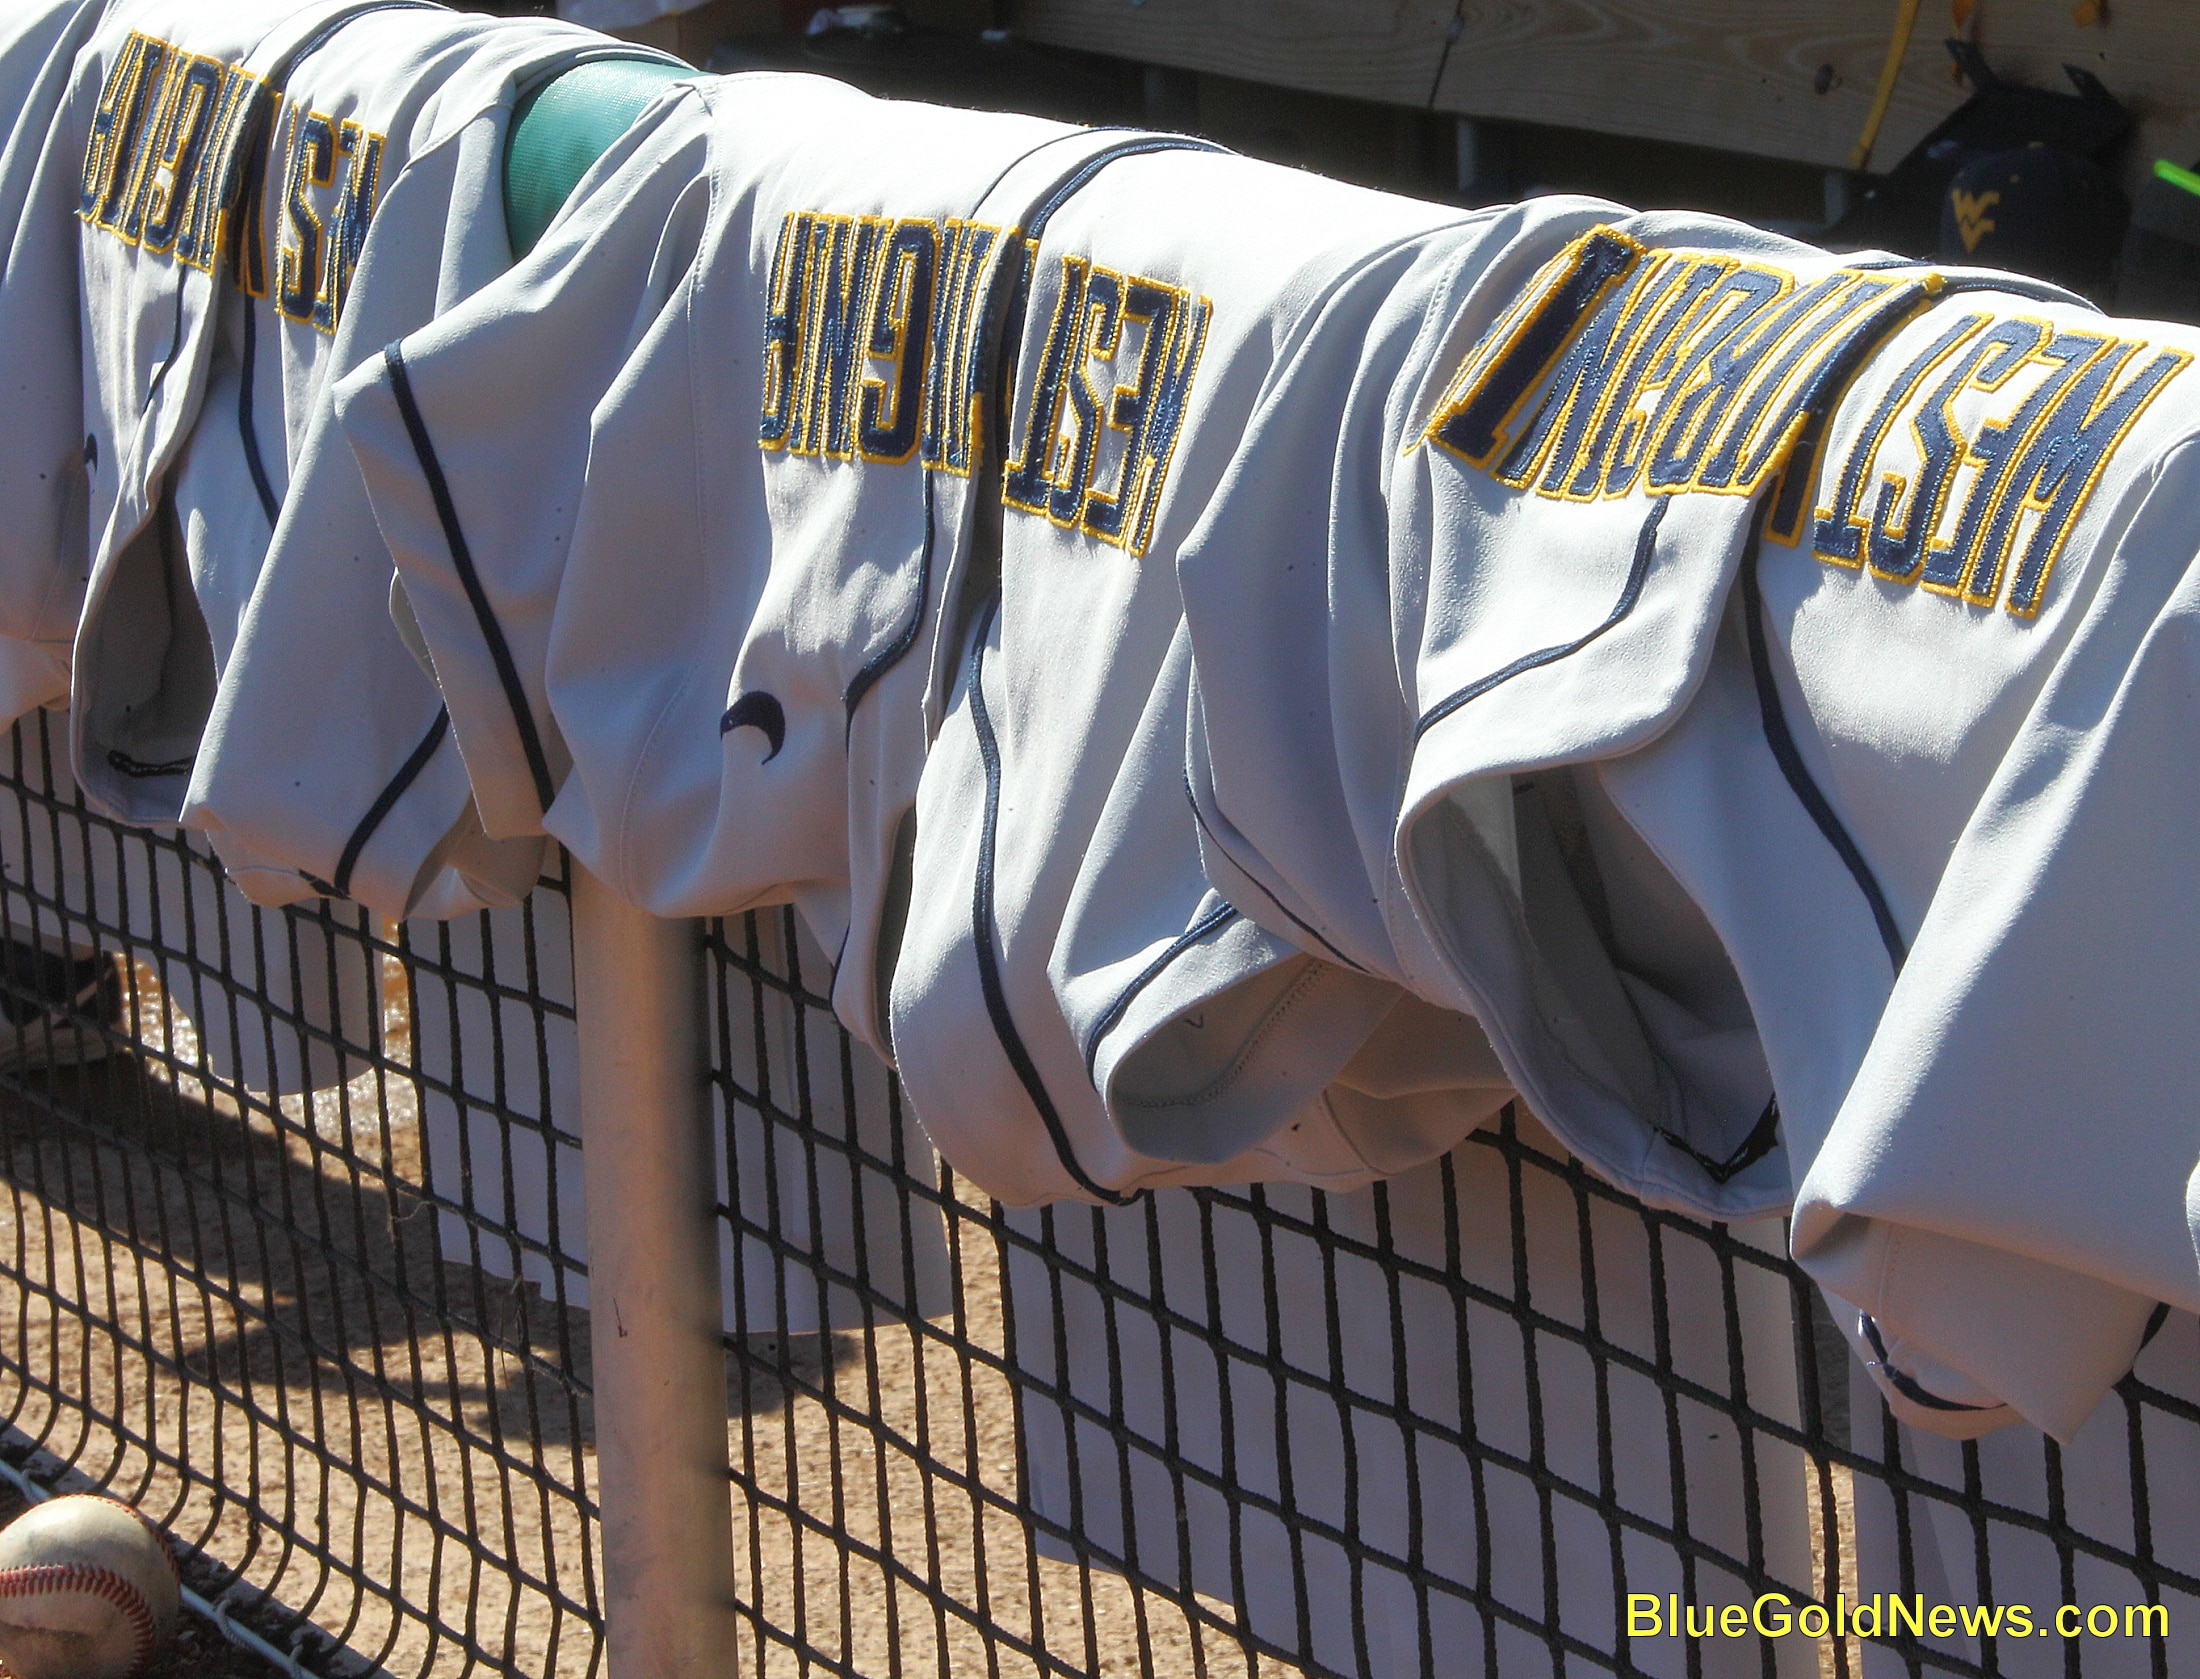 West Virginia uniforms line the dugout railing prior to the game